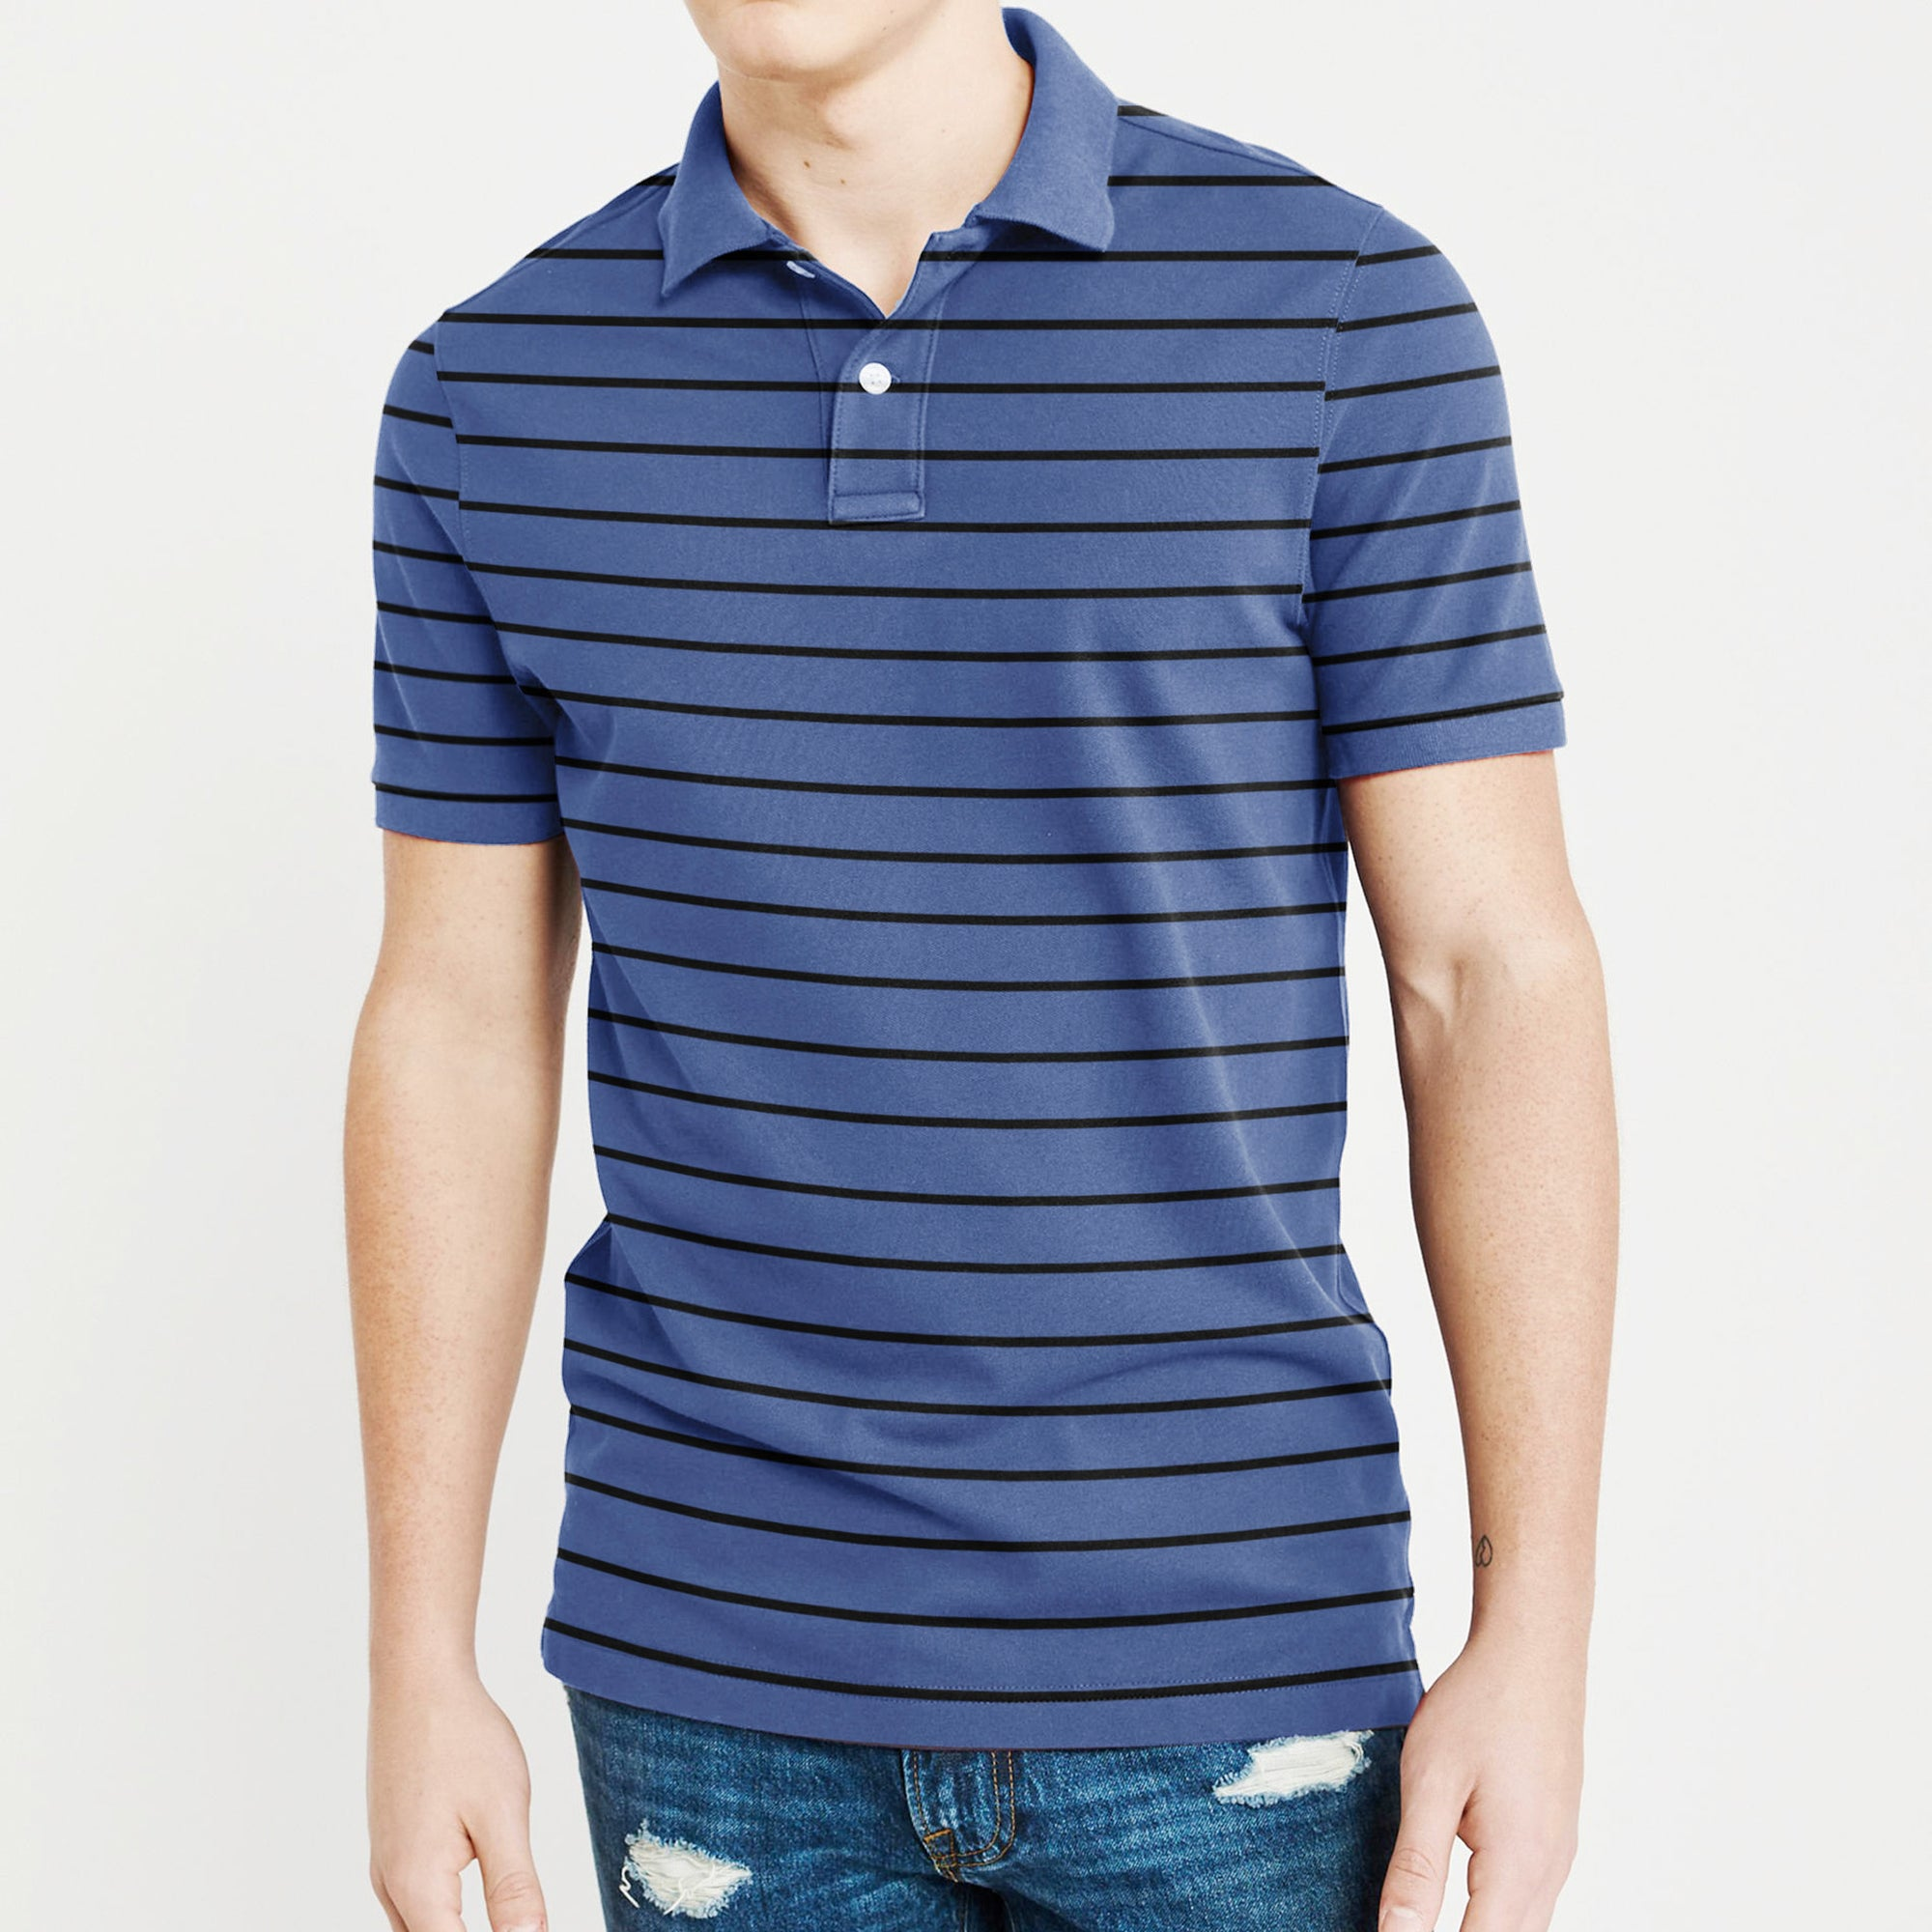 GAP Short Sleeve P.Q Polo Shirt For Men-Light Navy & Black Stripe-BE8406